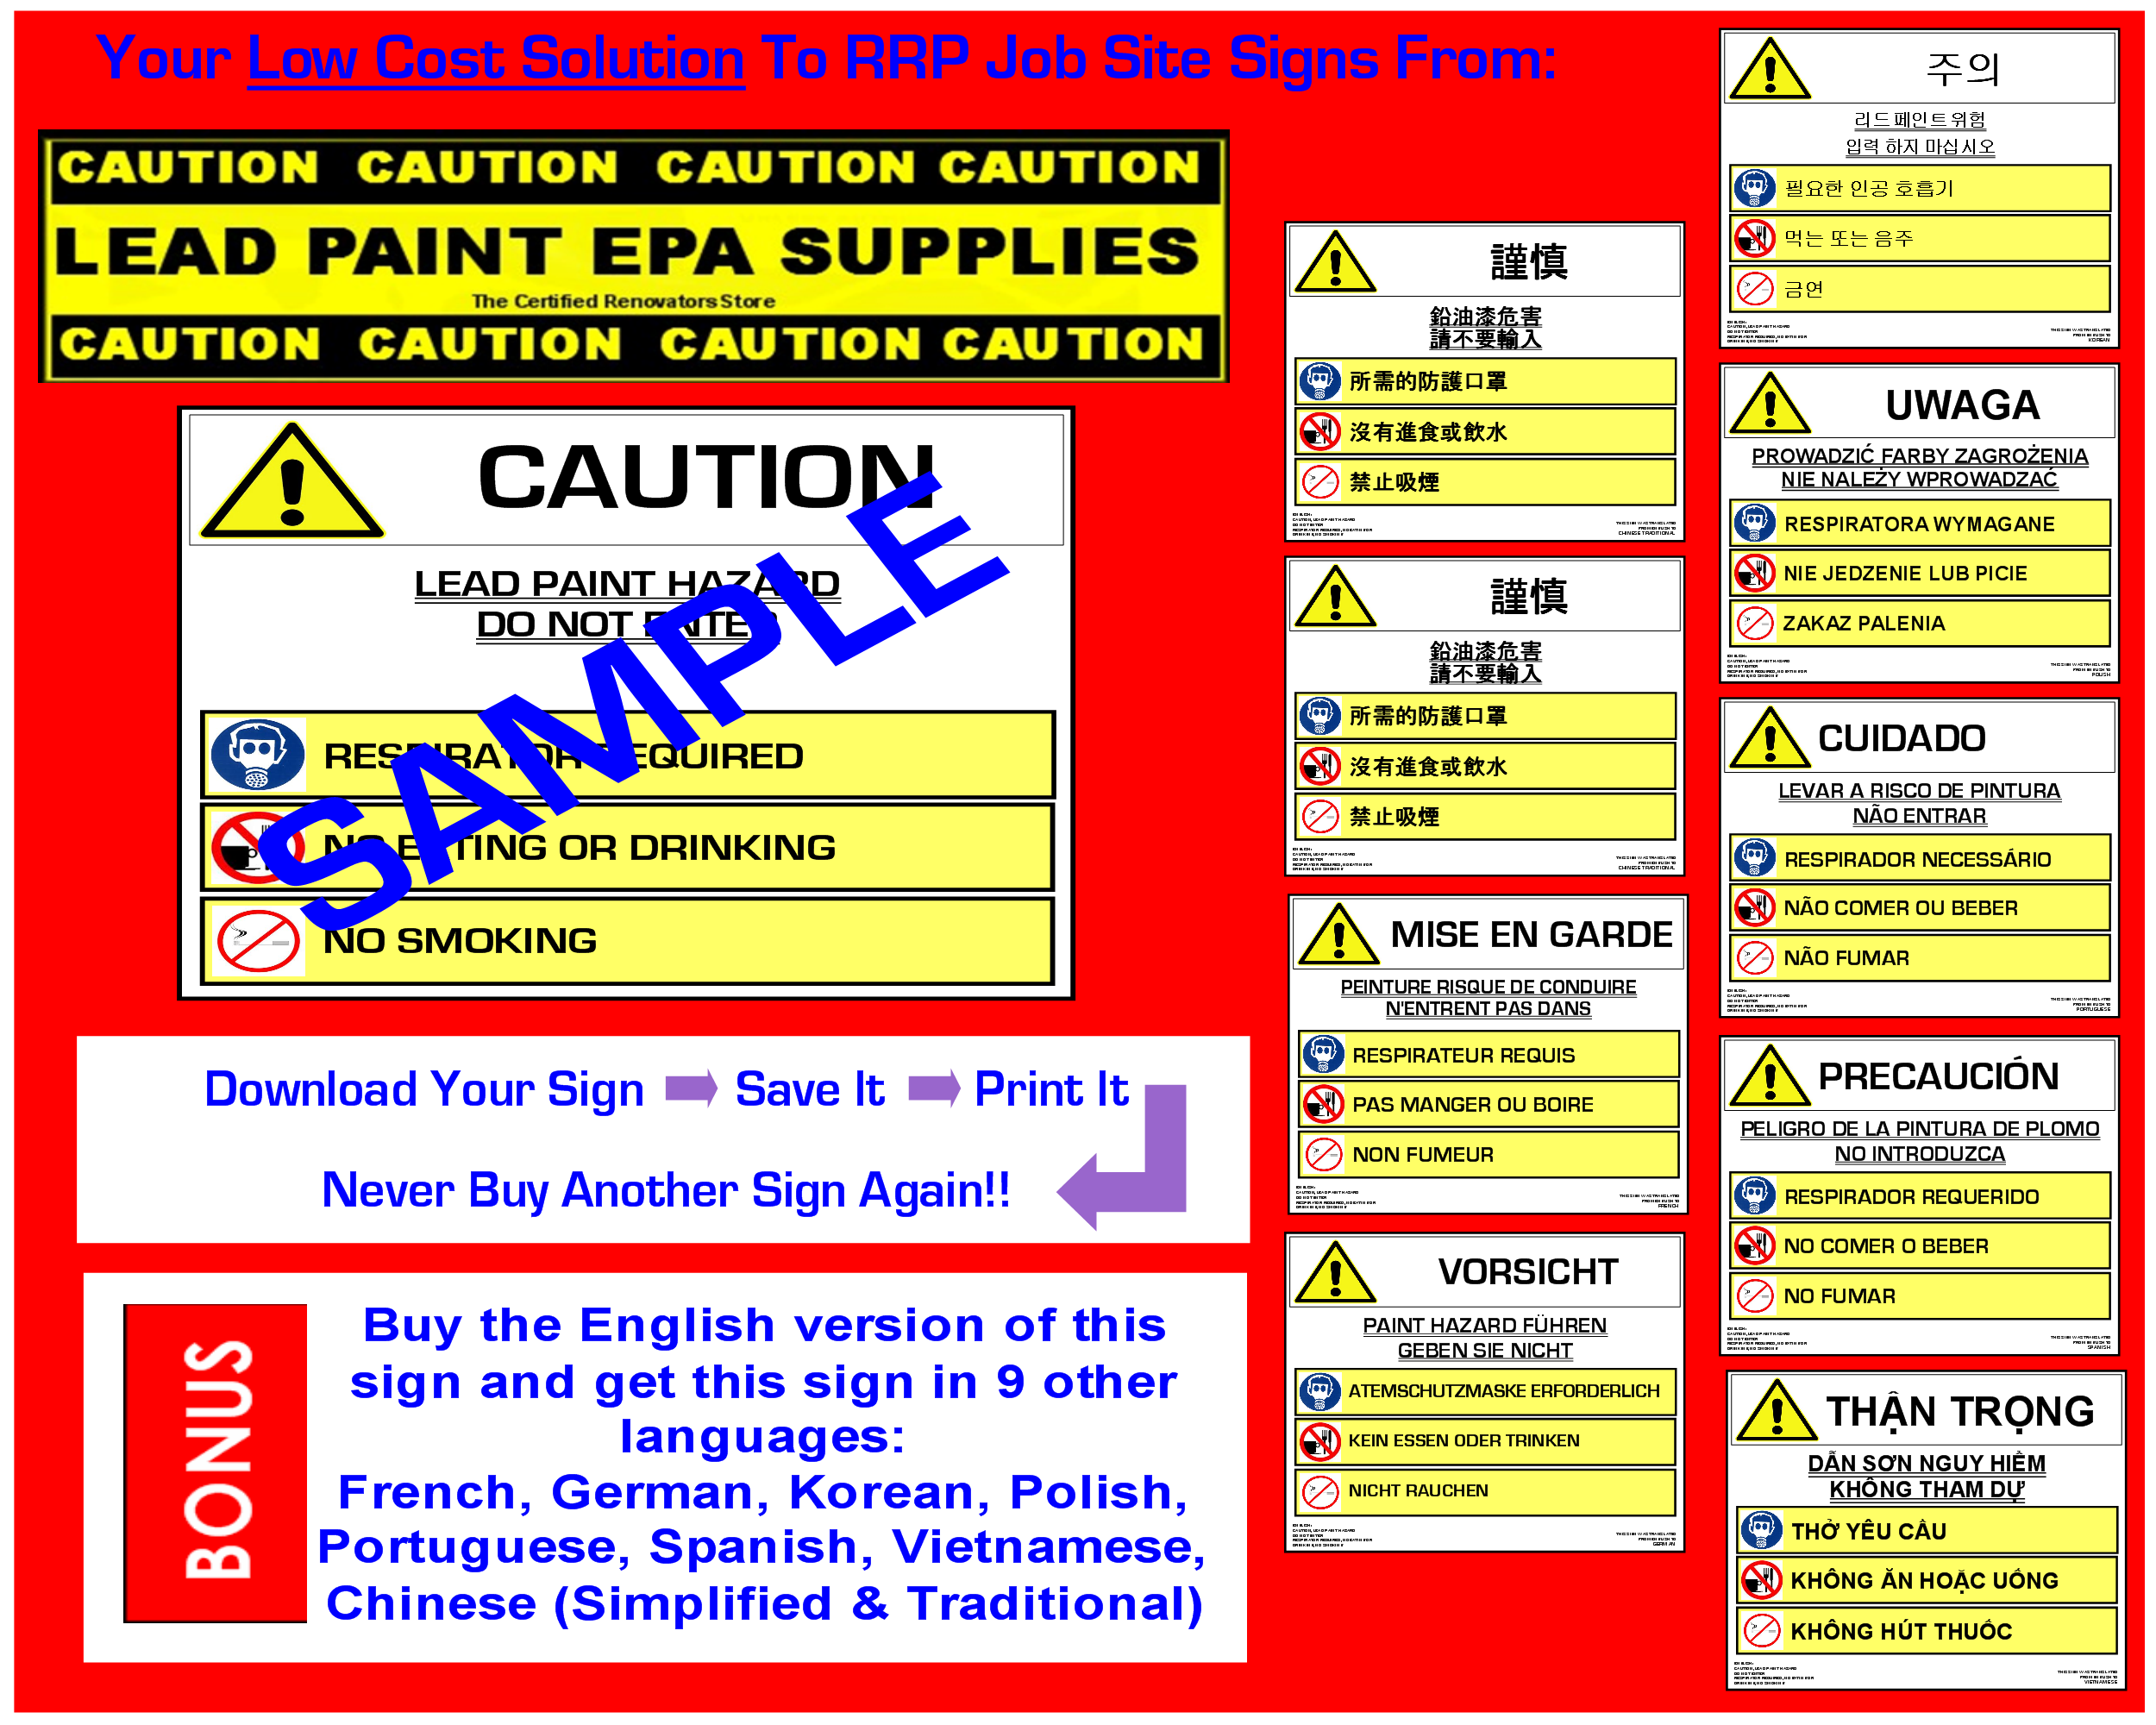 caution-lead-paint-hazard-symbols-banner.png